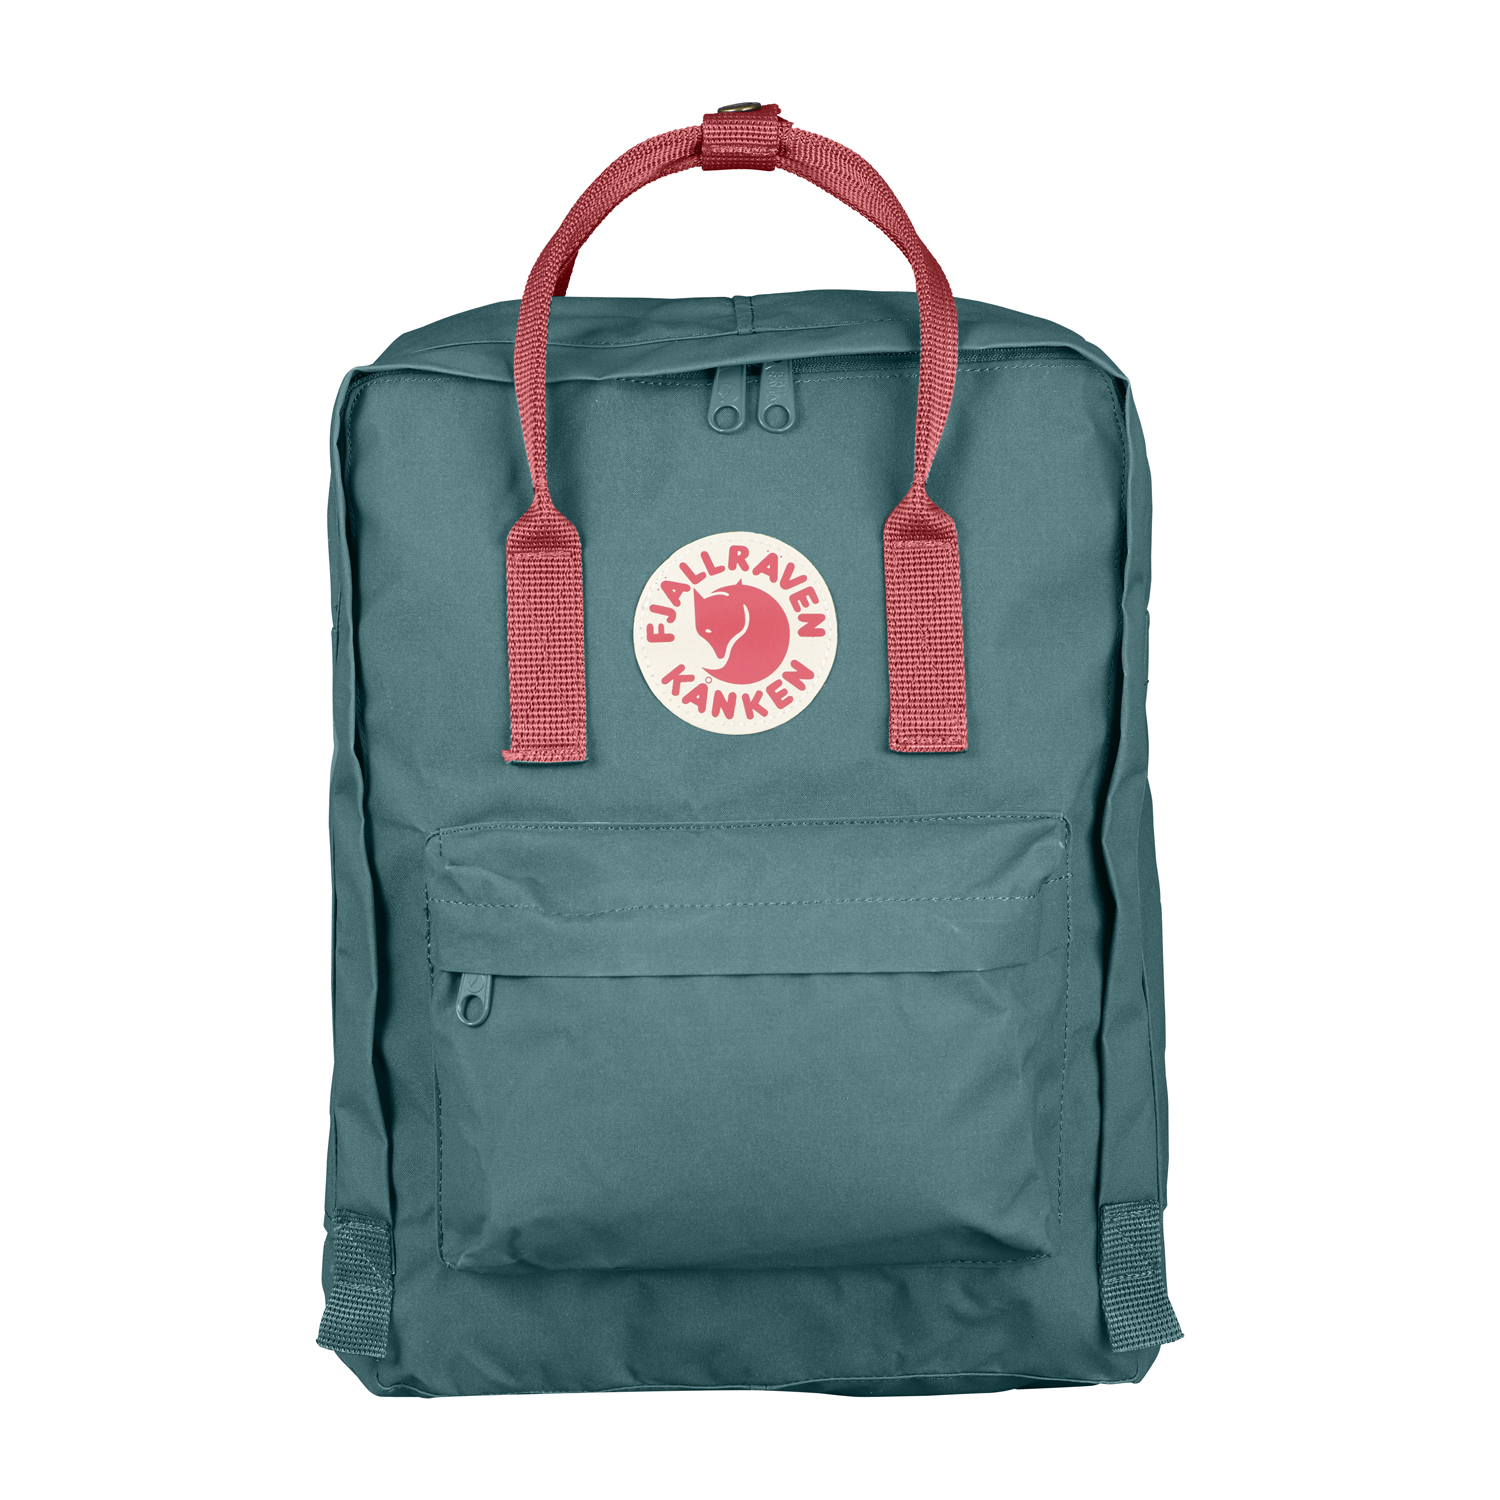 4d7d72789 Buy Fjallraven Kanken Backpack - Frost Green-Peach Pink in ...